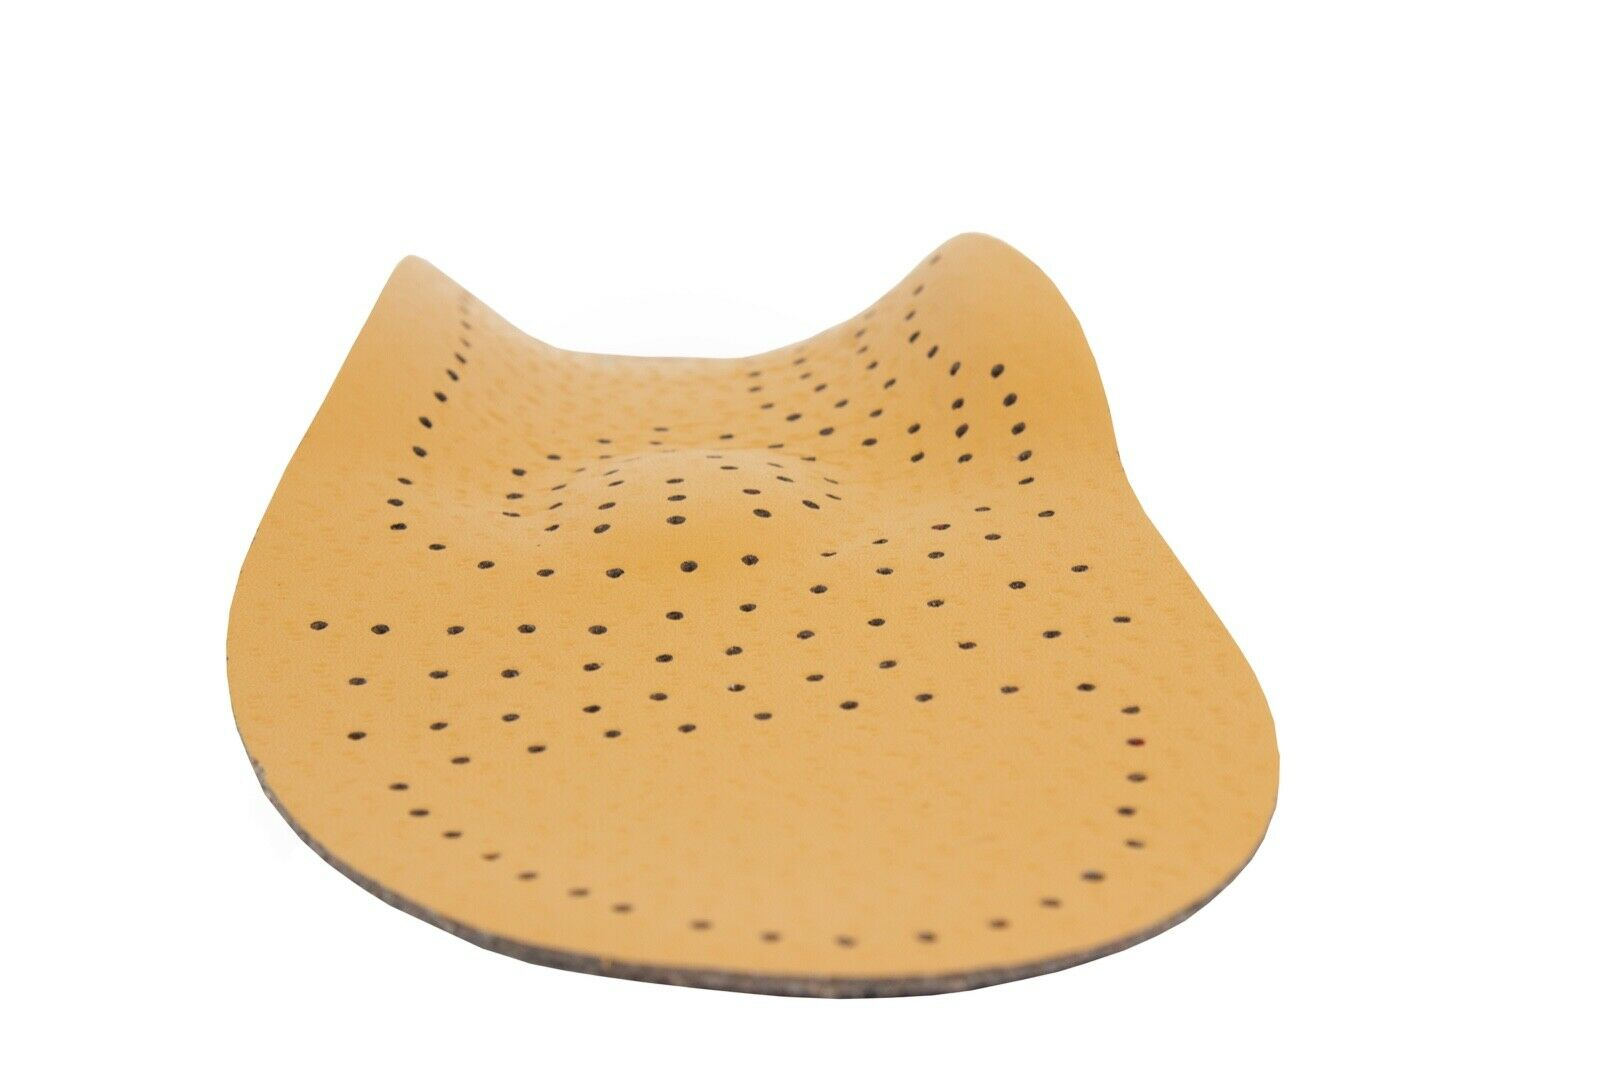 PRO-11-WELLBEING-Leather-Orthotic-insole-with-Metatarsal-raise 縮圖 8